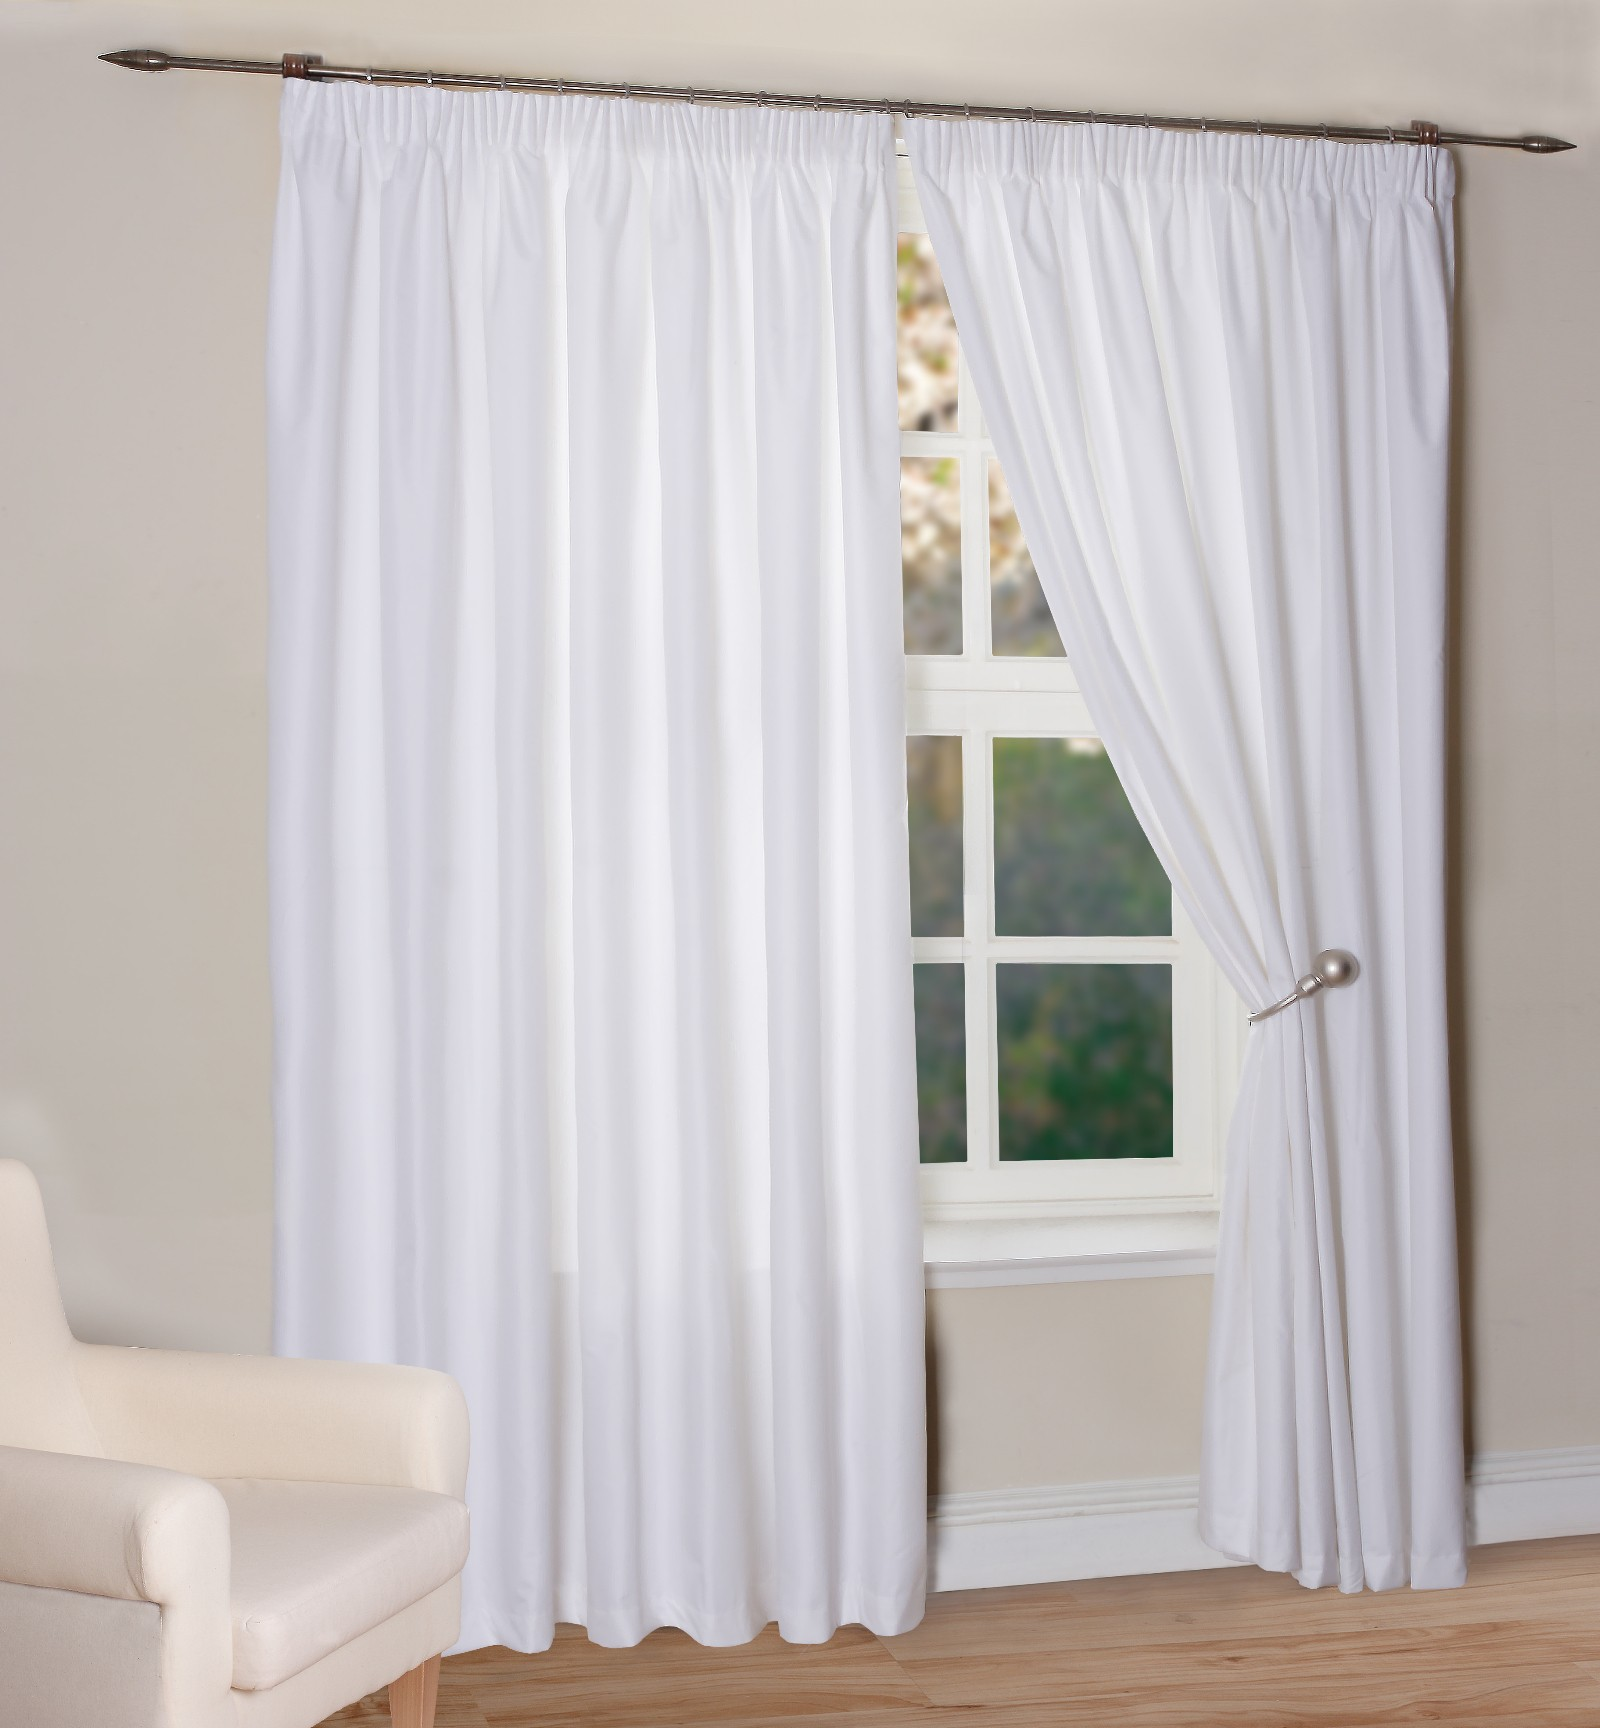 soundproof curtains target front door window treatments cheap window treatments